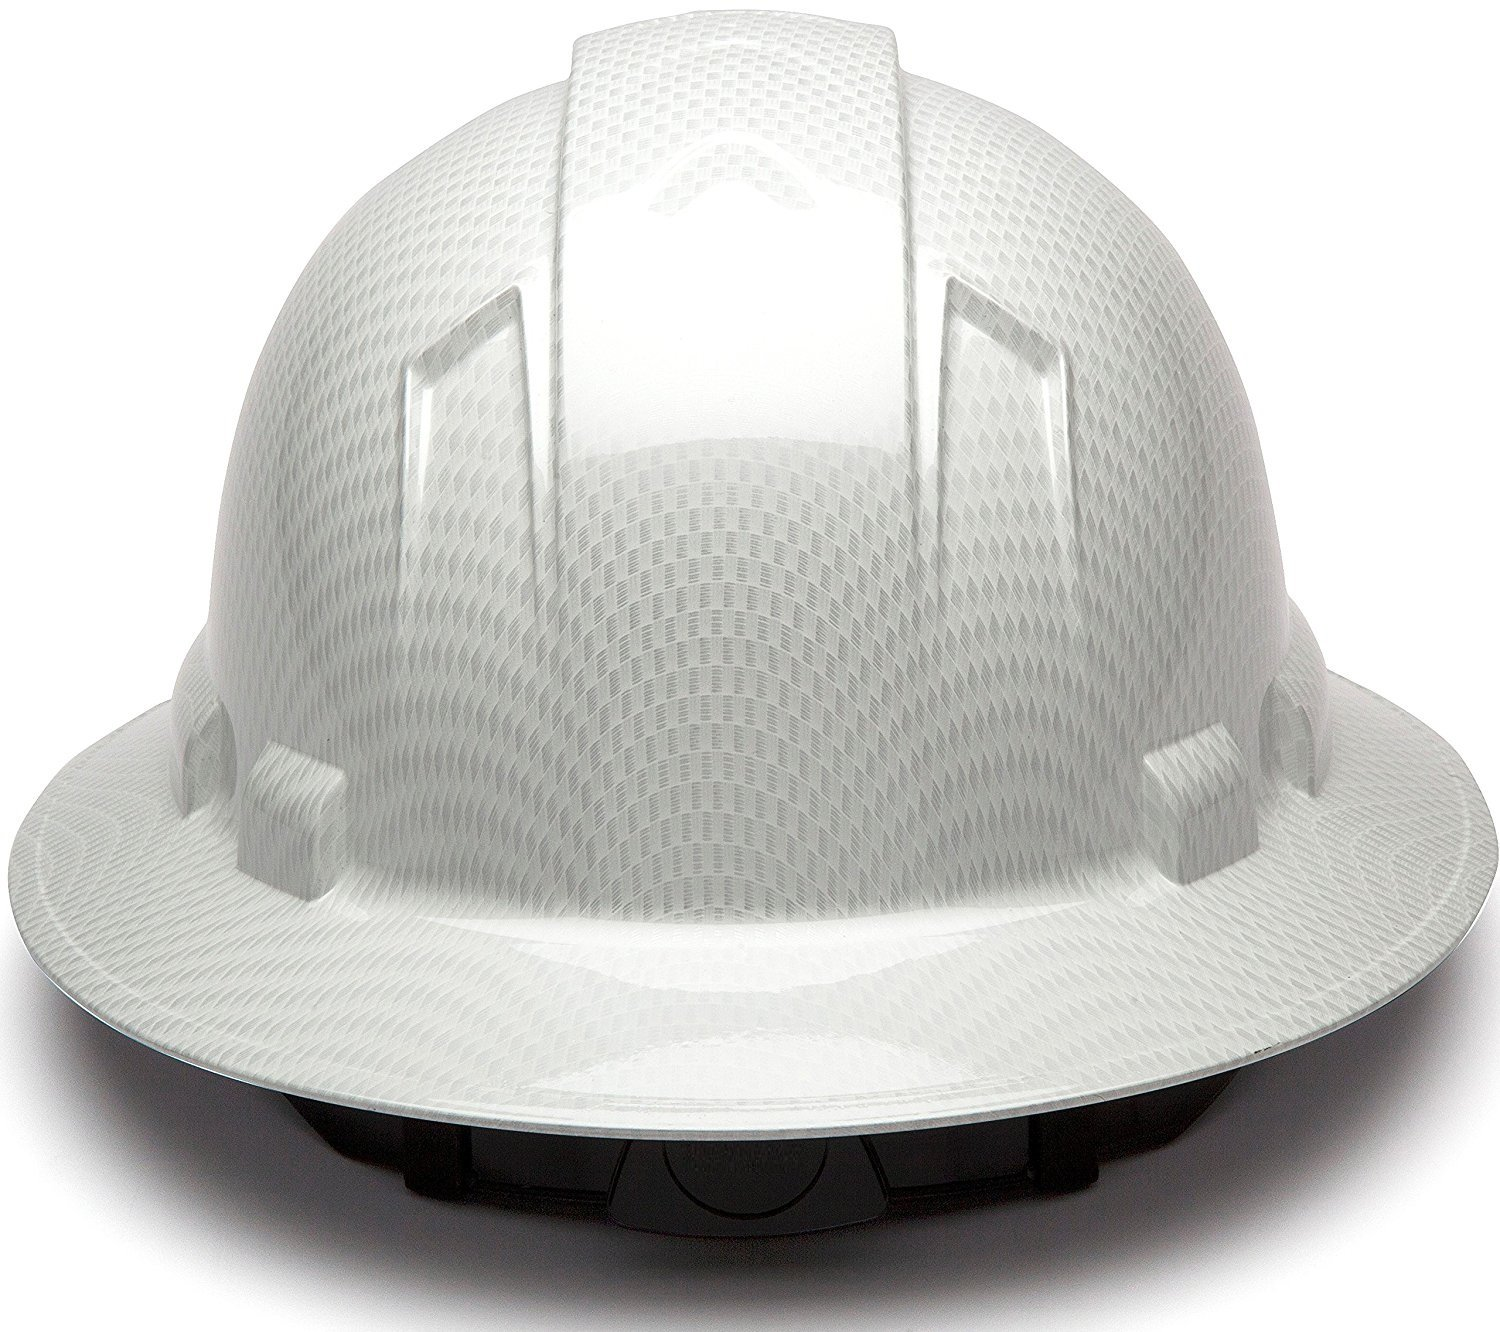 Full Brim Hard Hat, Adjustable Ratchet 4 Pt Suspension, Durable Protection safety helmet, Graphite Pattern Design, White Shiny, by Tuff America